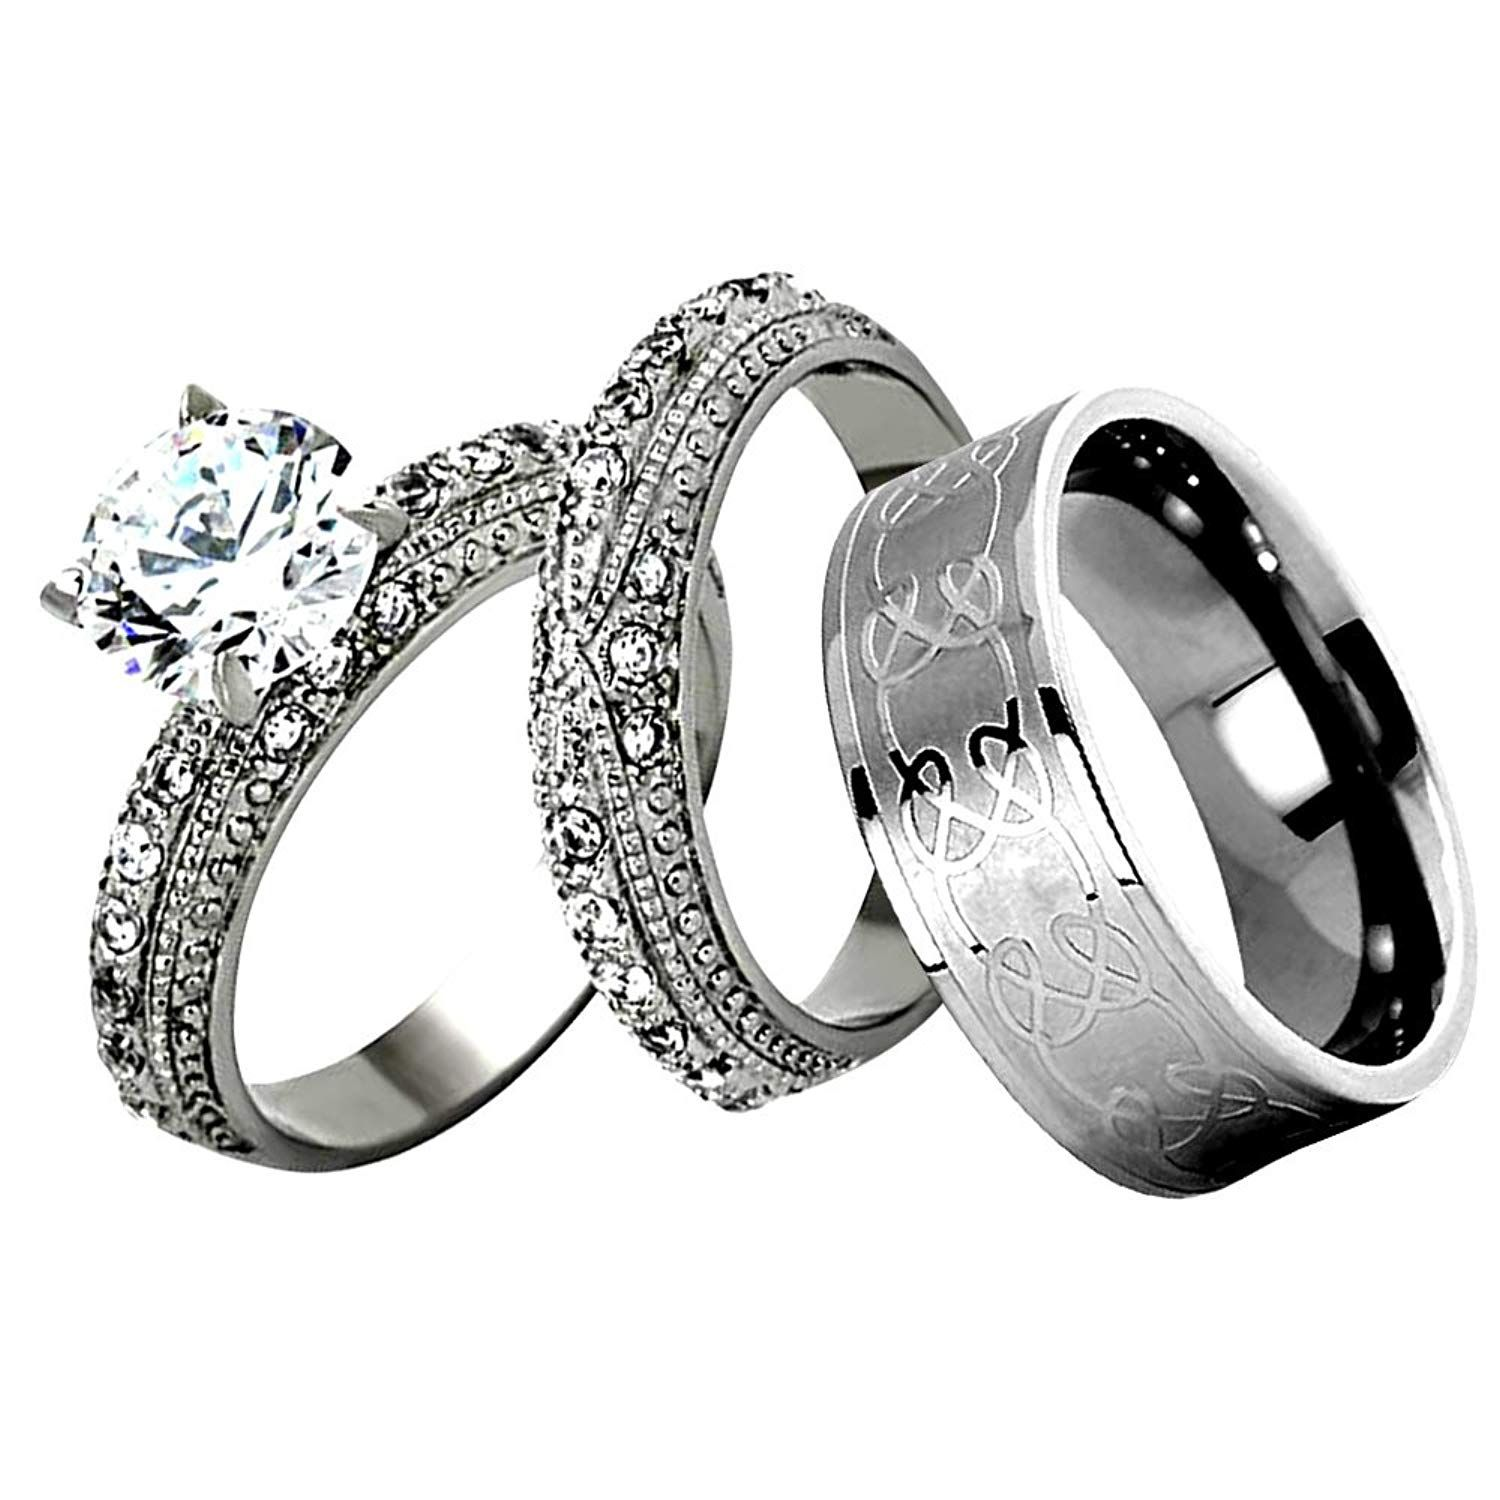 FlameReflection Stainless Steel White His and Hers Wedding